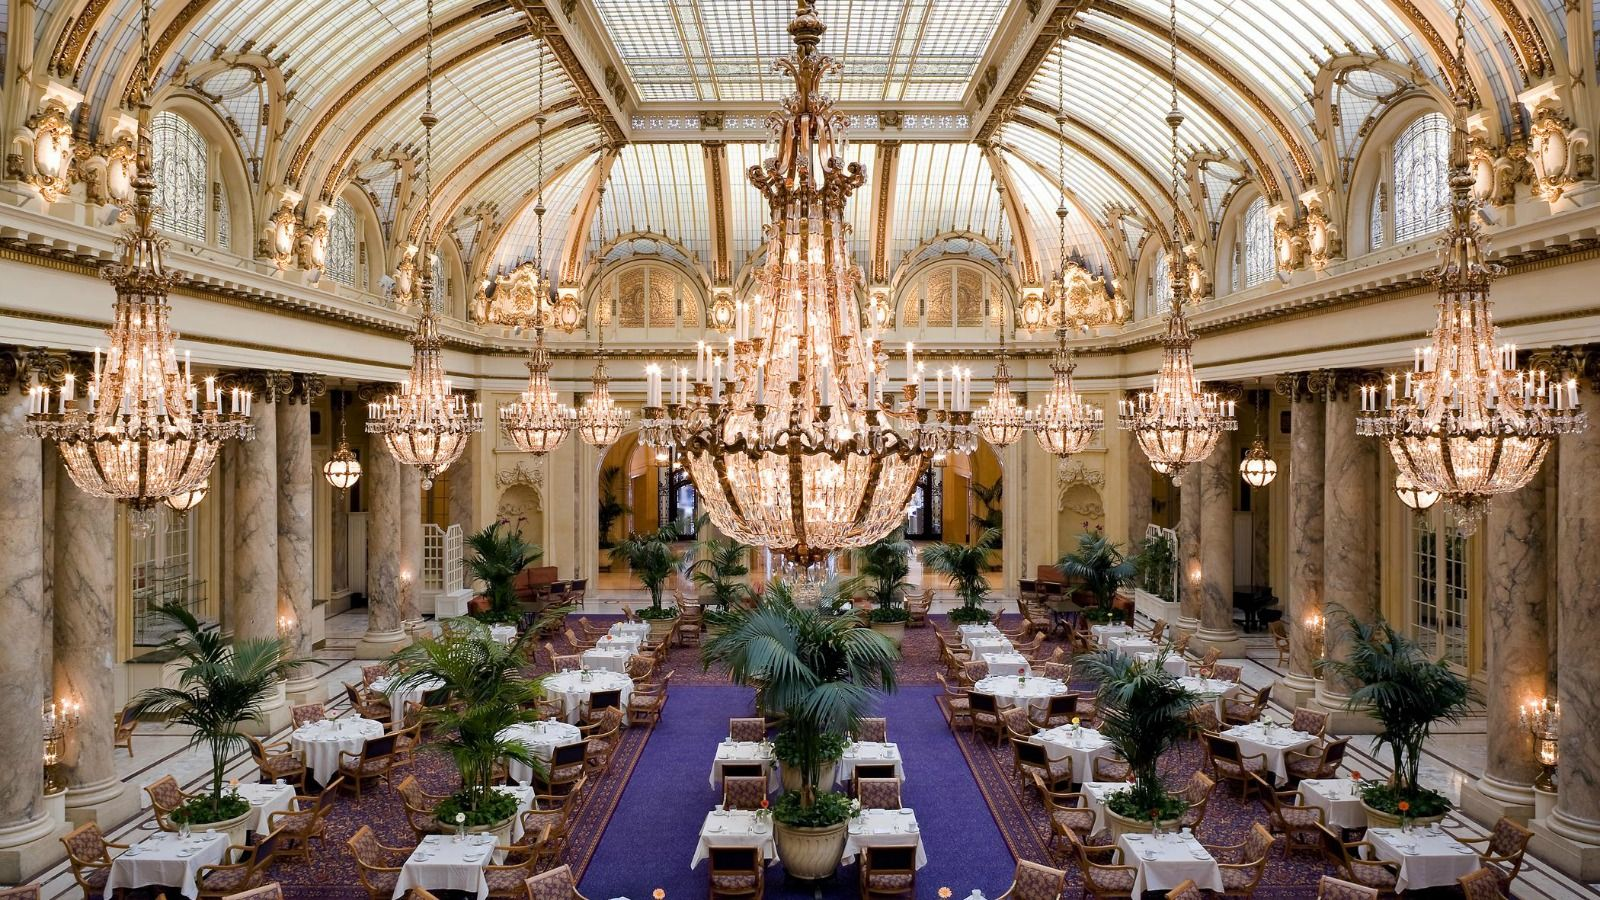 The Palace Hotel's Garden Court The only indoor historic